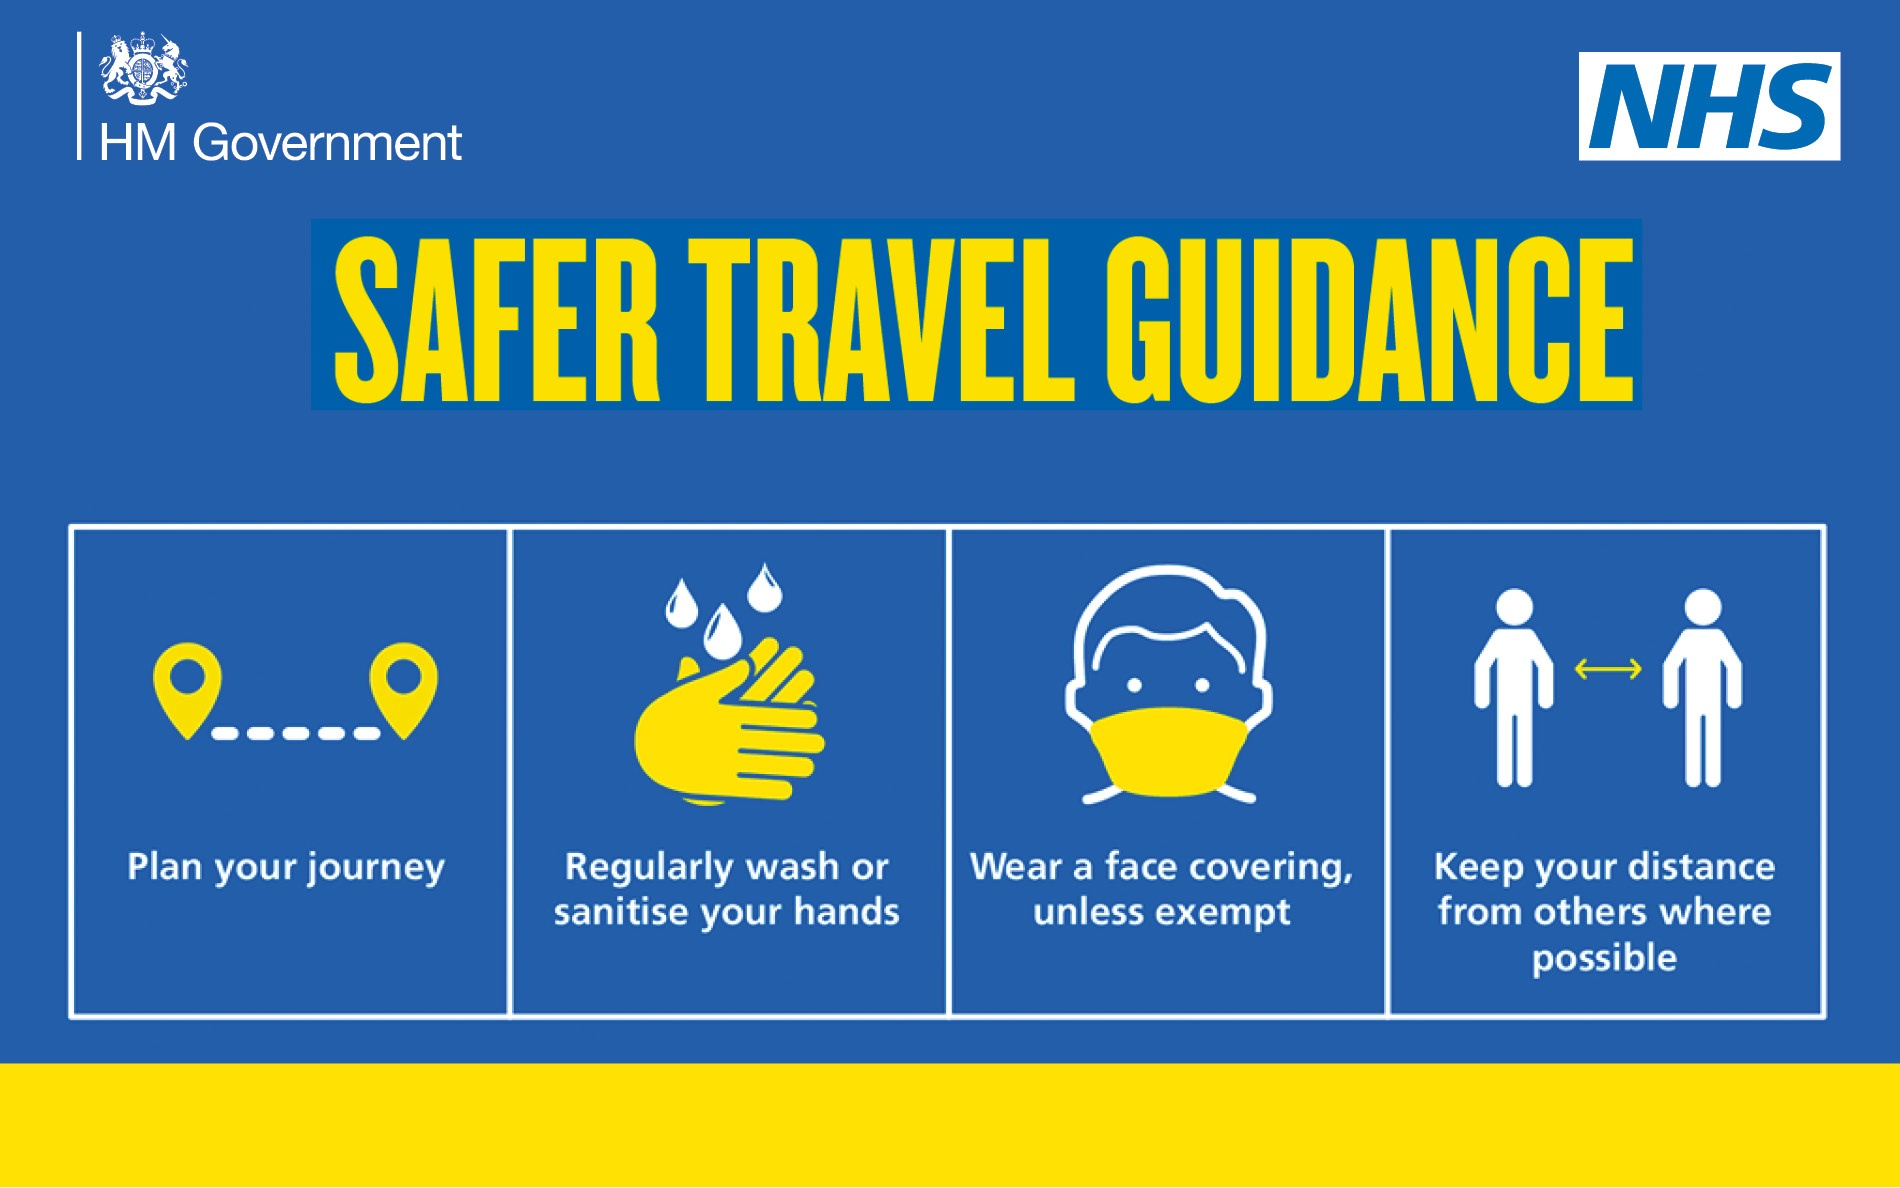 Travel guidance